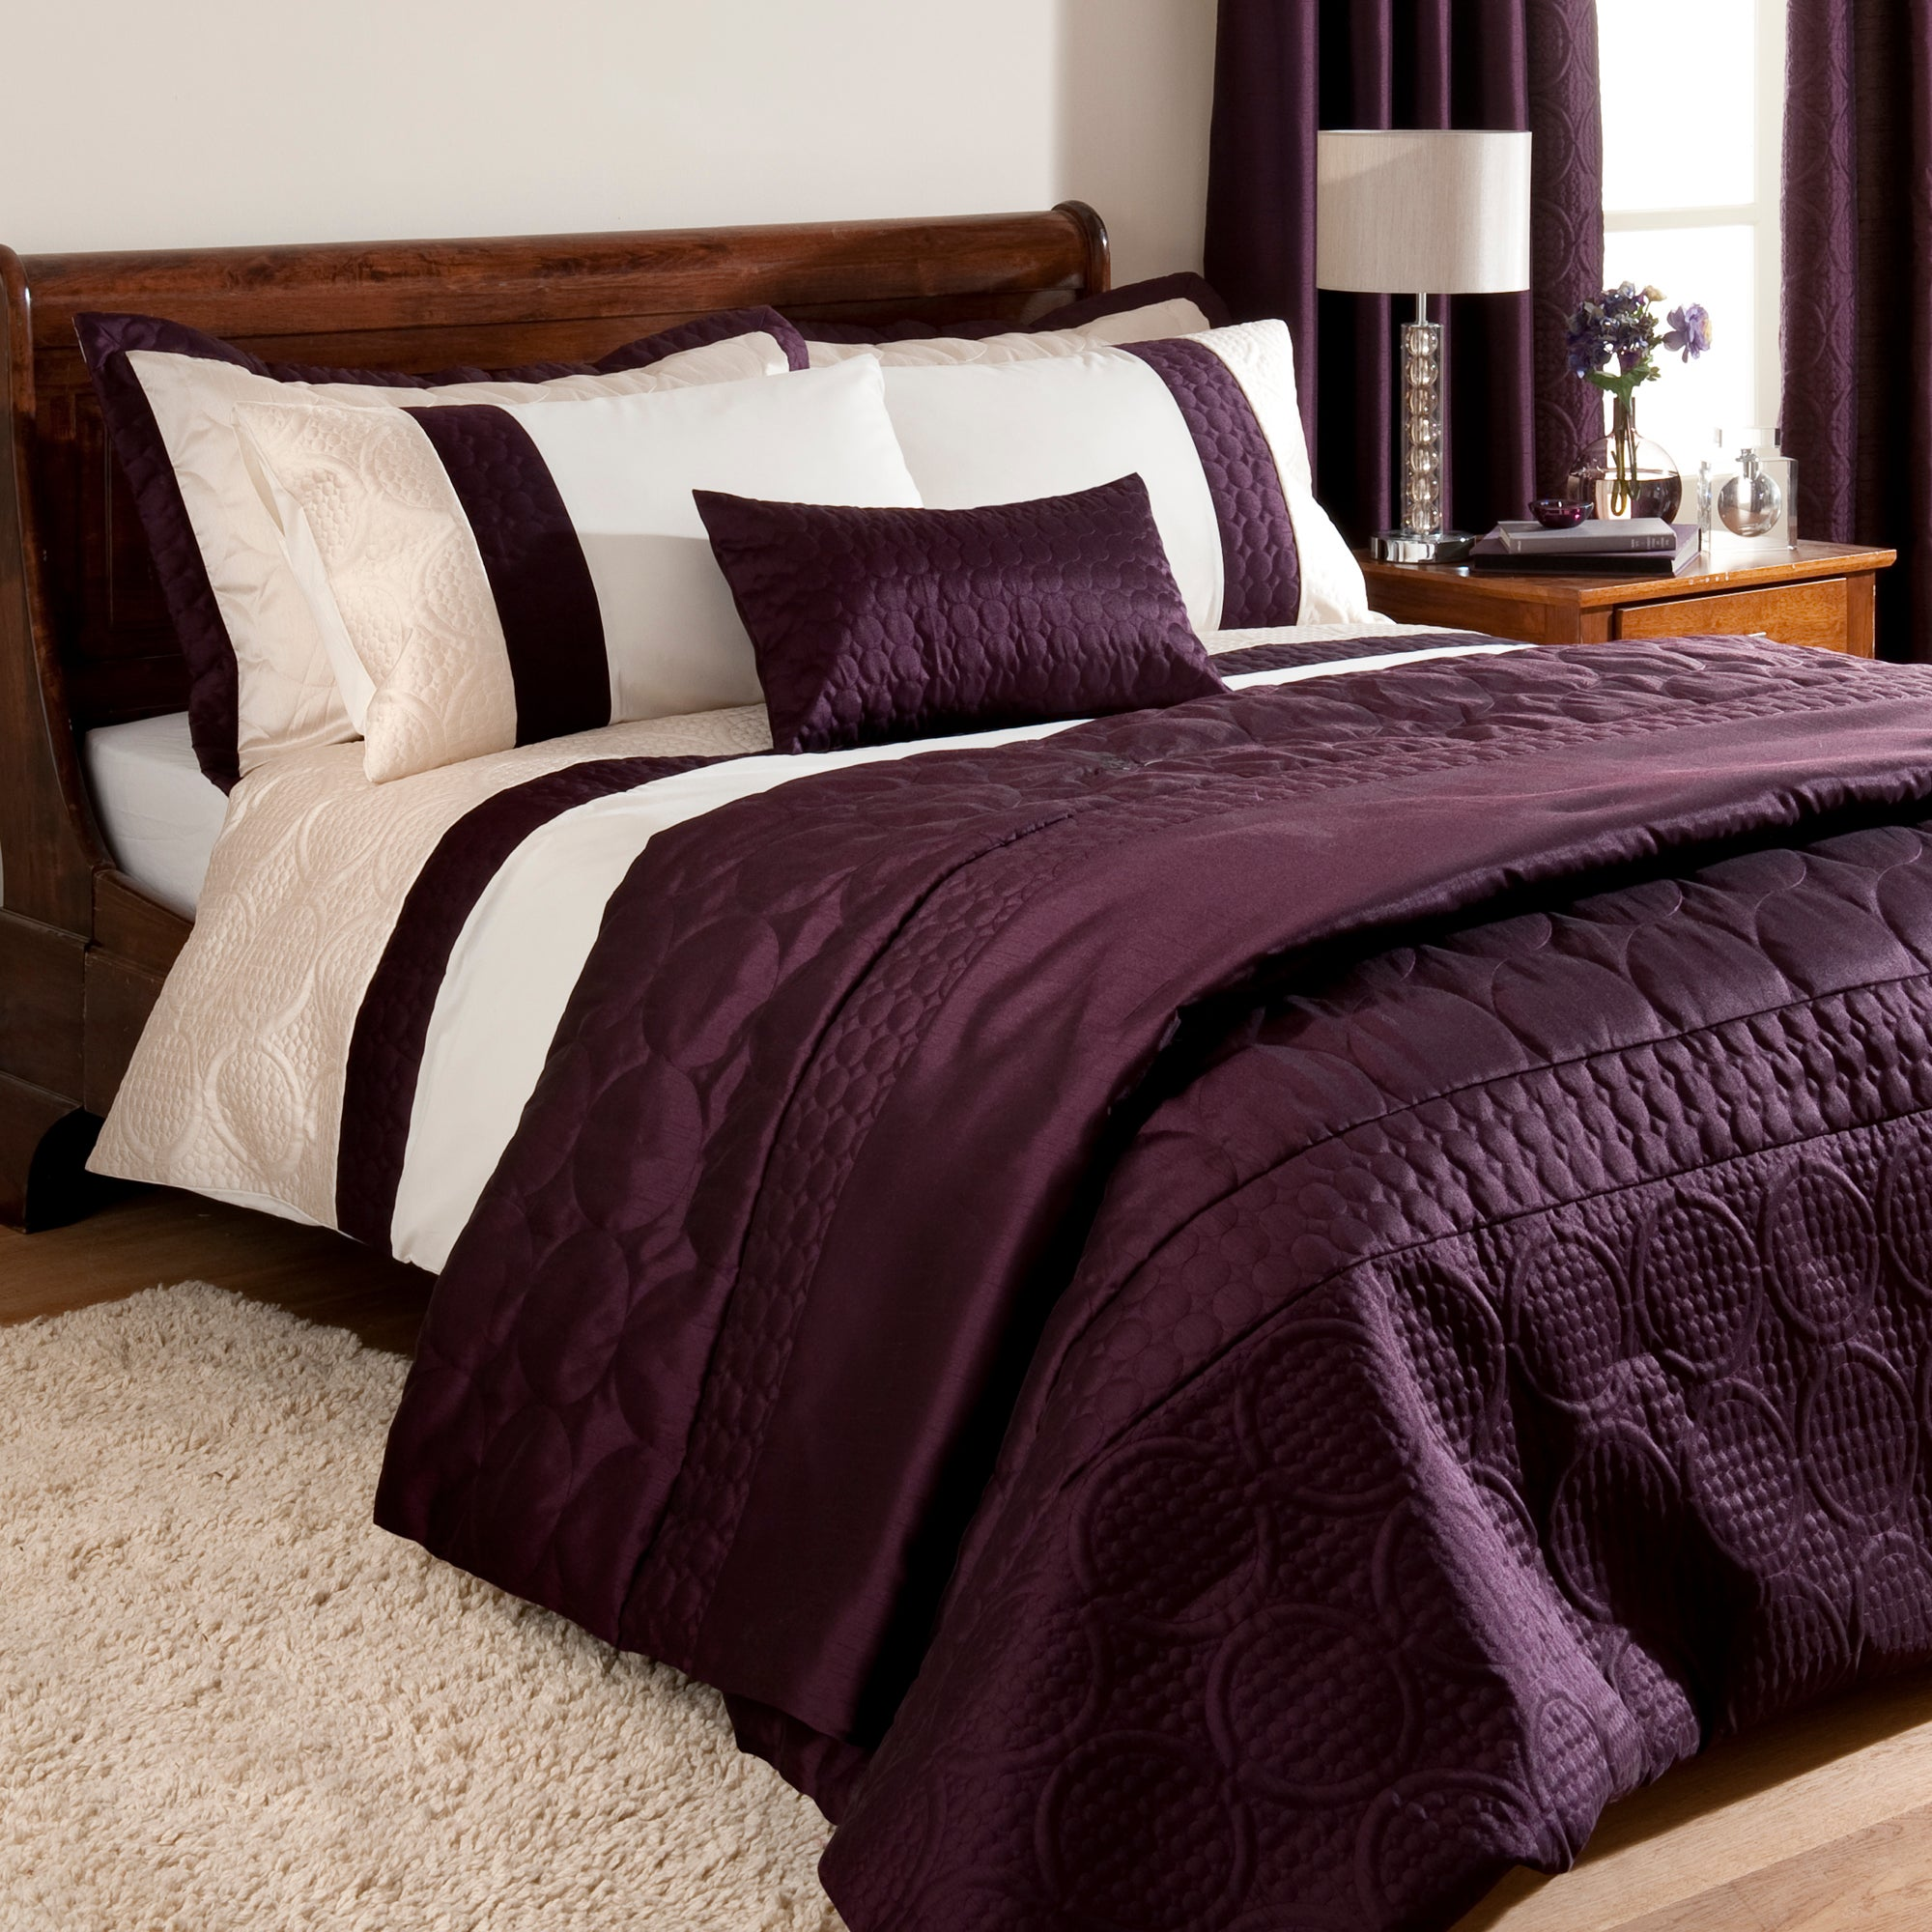 Plum Circles Collection Duvet Cover